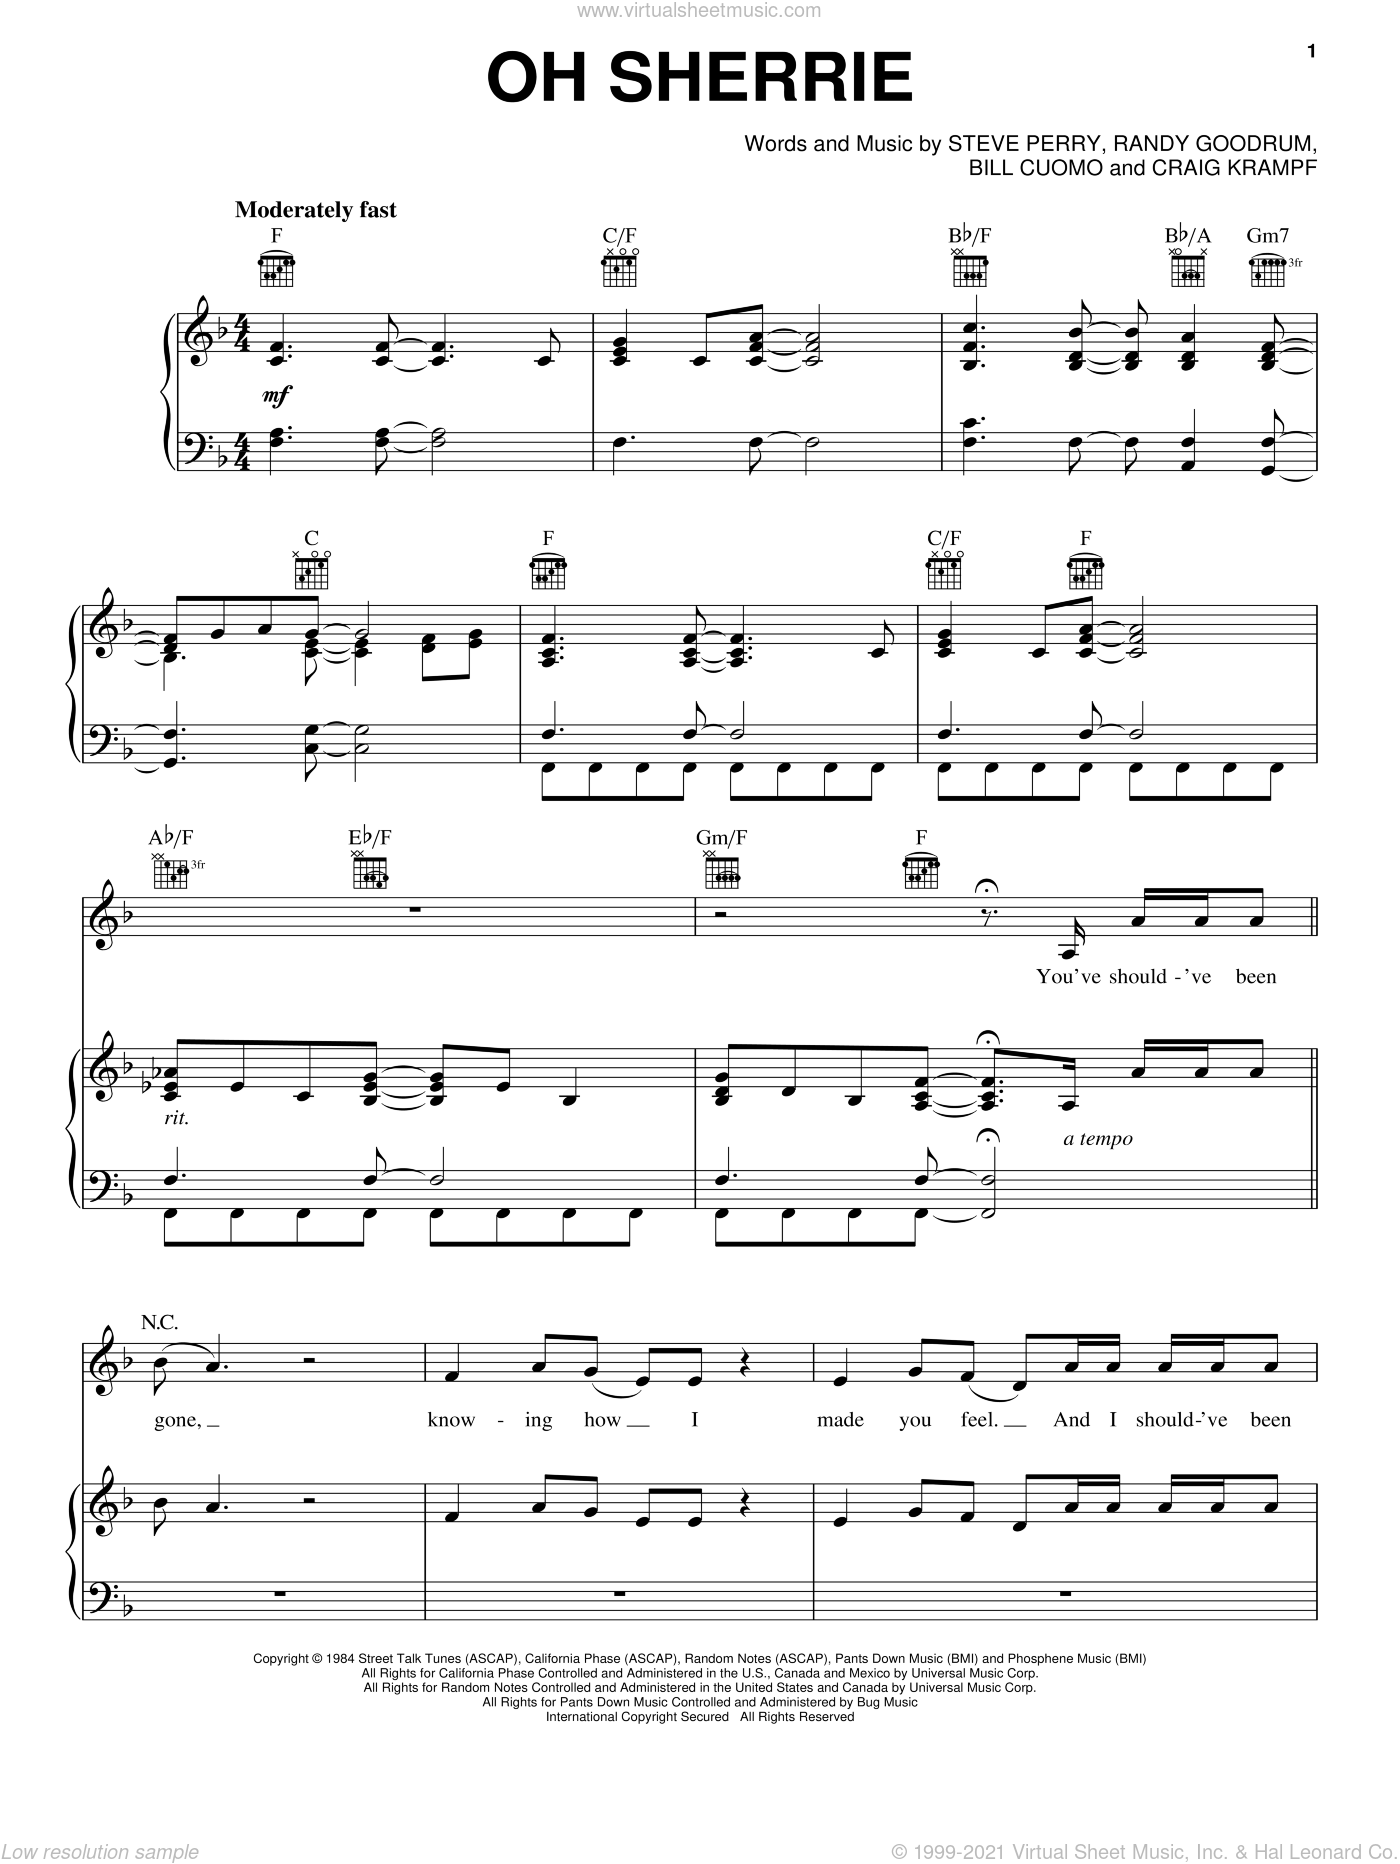 Oh Sherrie sheet music for voice, piano or guitar by Steve Perry, Rock Of Ages (Musical), Bill Cuomo, Craig Krampf and Randy Goodrum, intermediate skill level